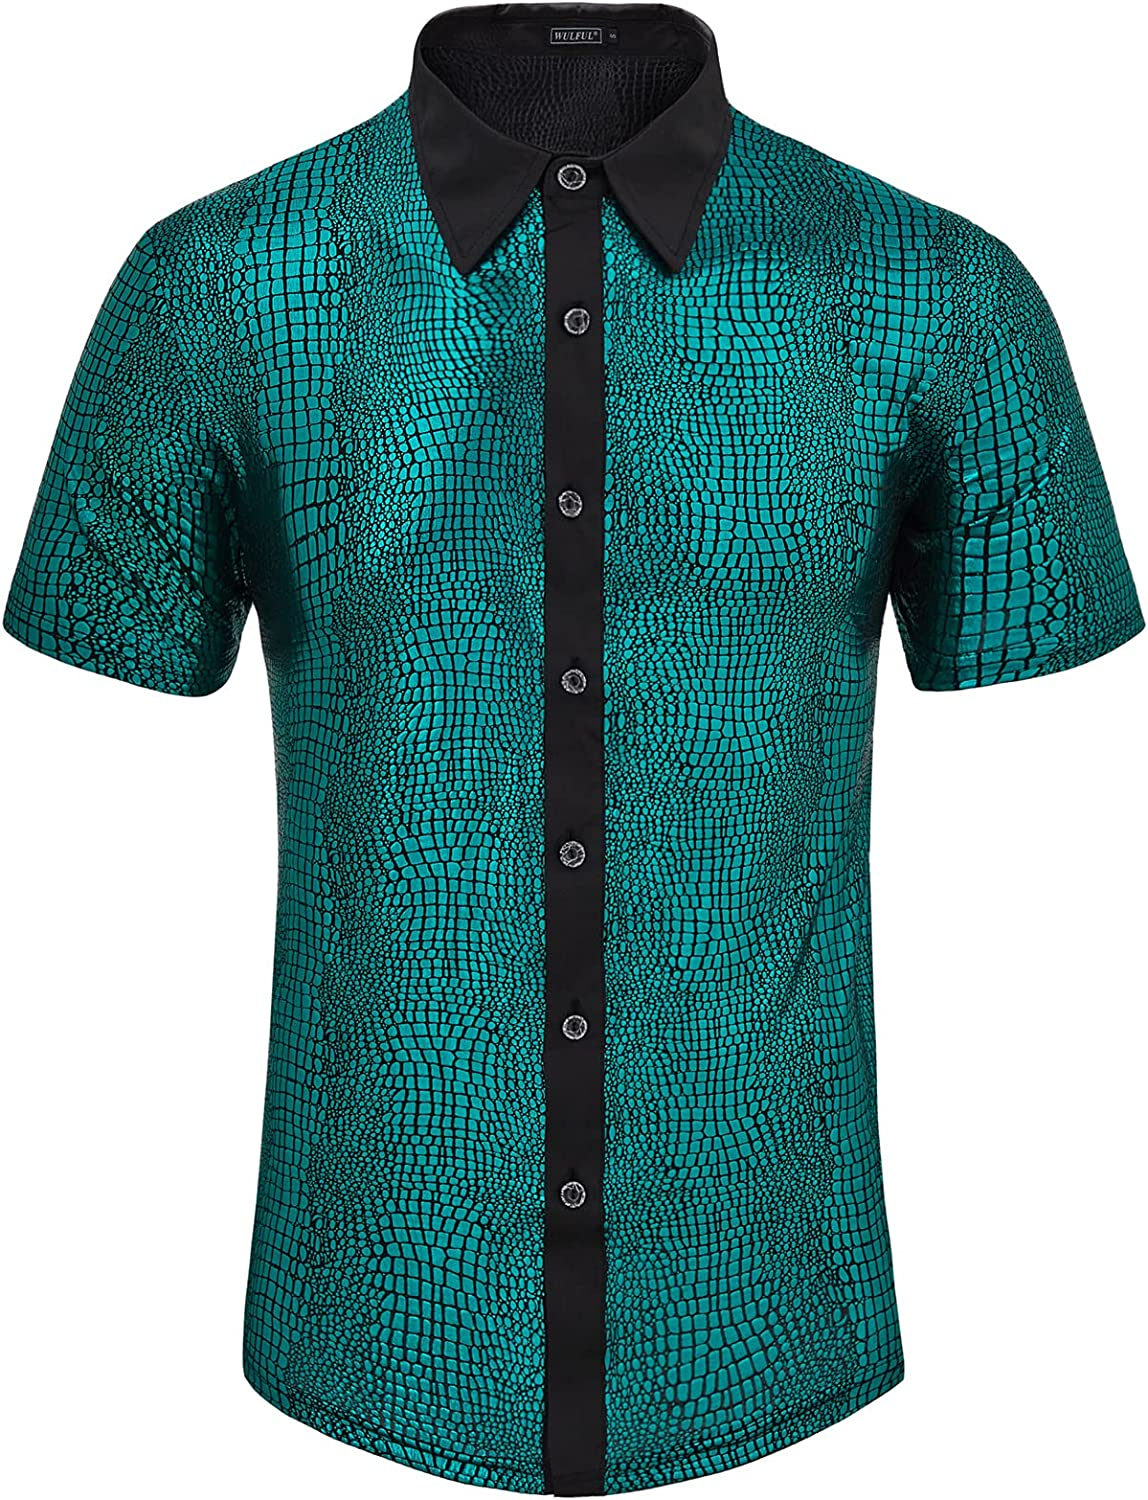 Indefinitely WULFUL Men's Rare Disco Shirt Sequins Down Button Shirts Short Sleeve